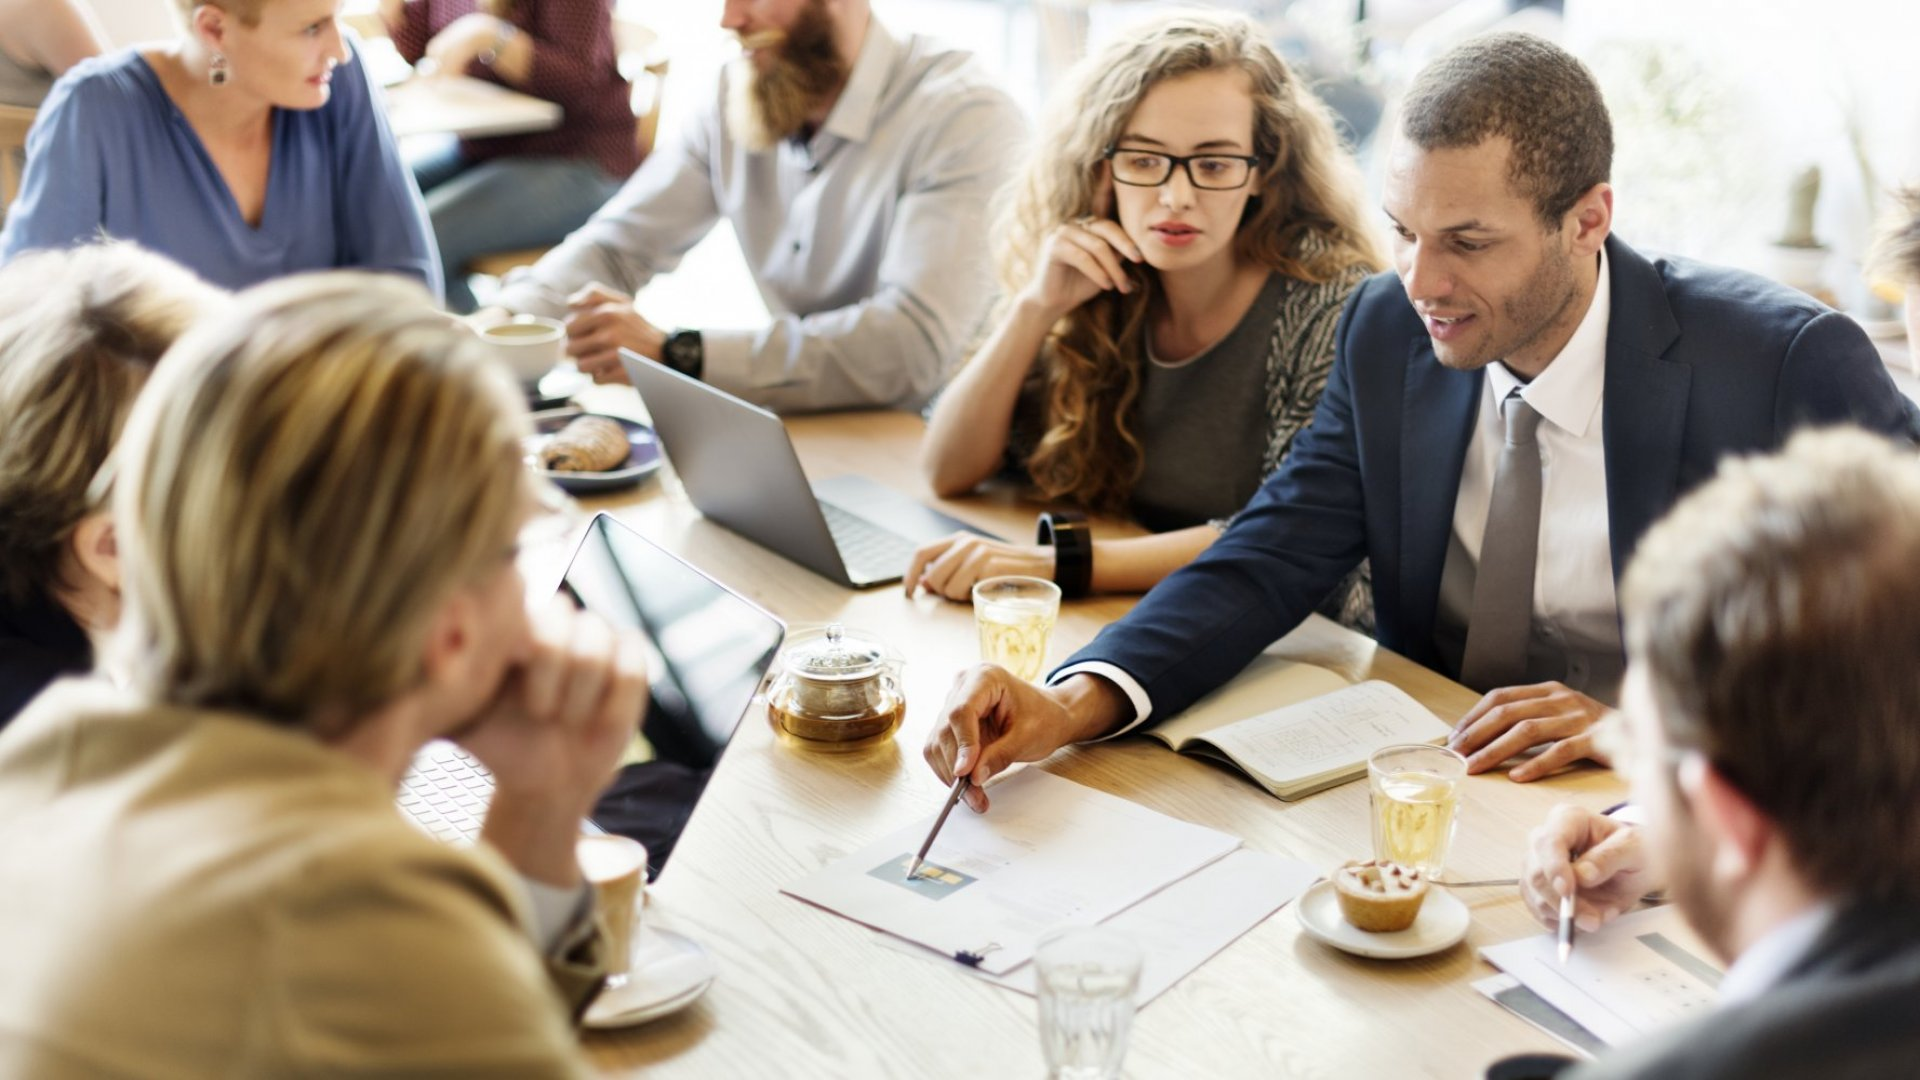 5 Professionals Who Can Help Drive Your Small Biz Success